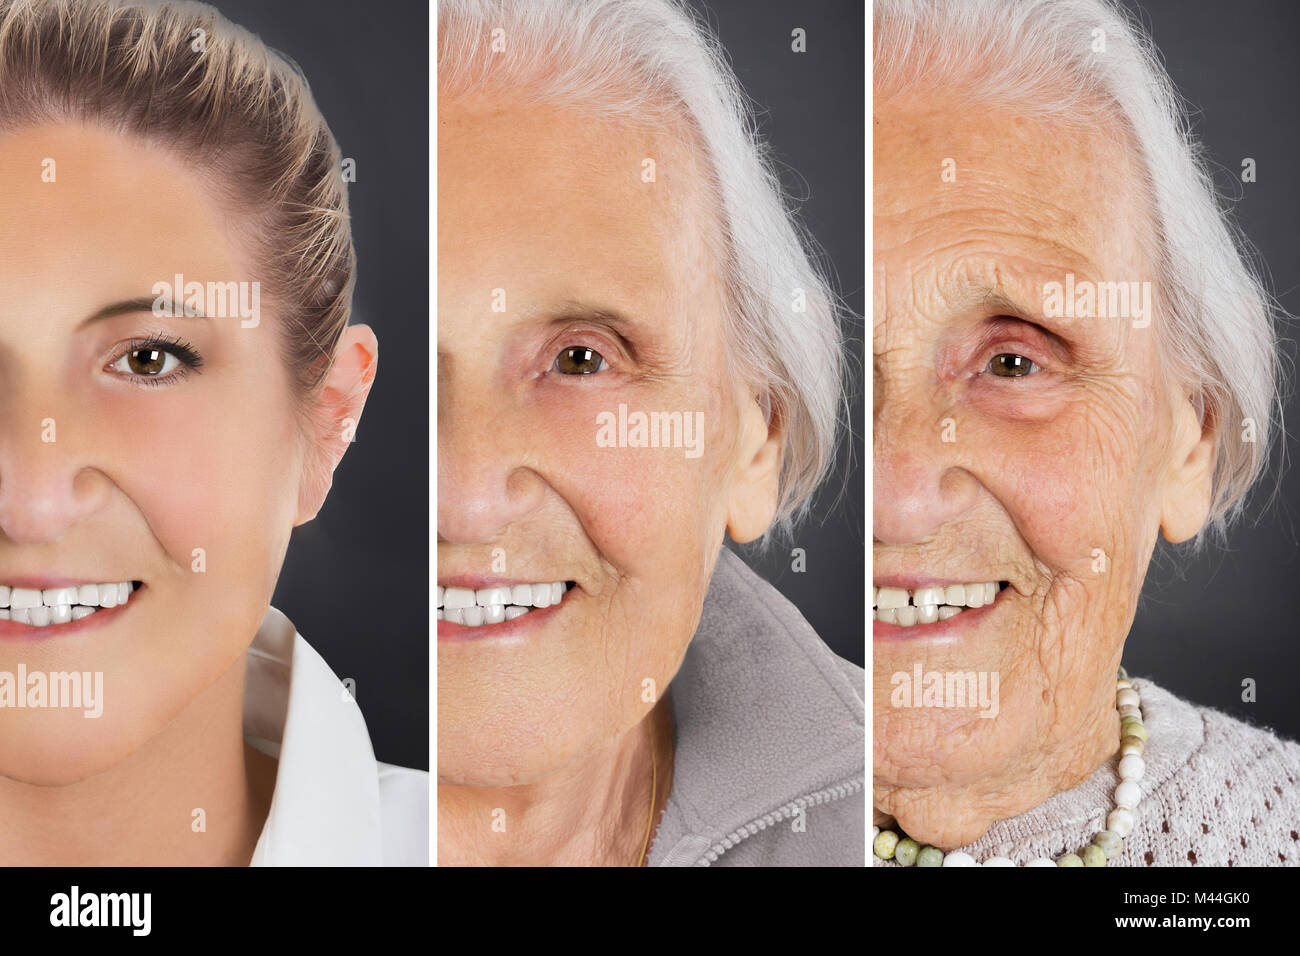 Multiple image showing ageing process of woman over gray background - Stock Image